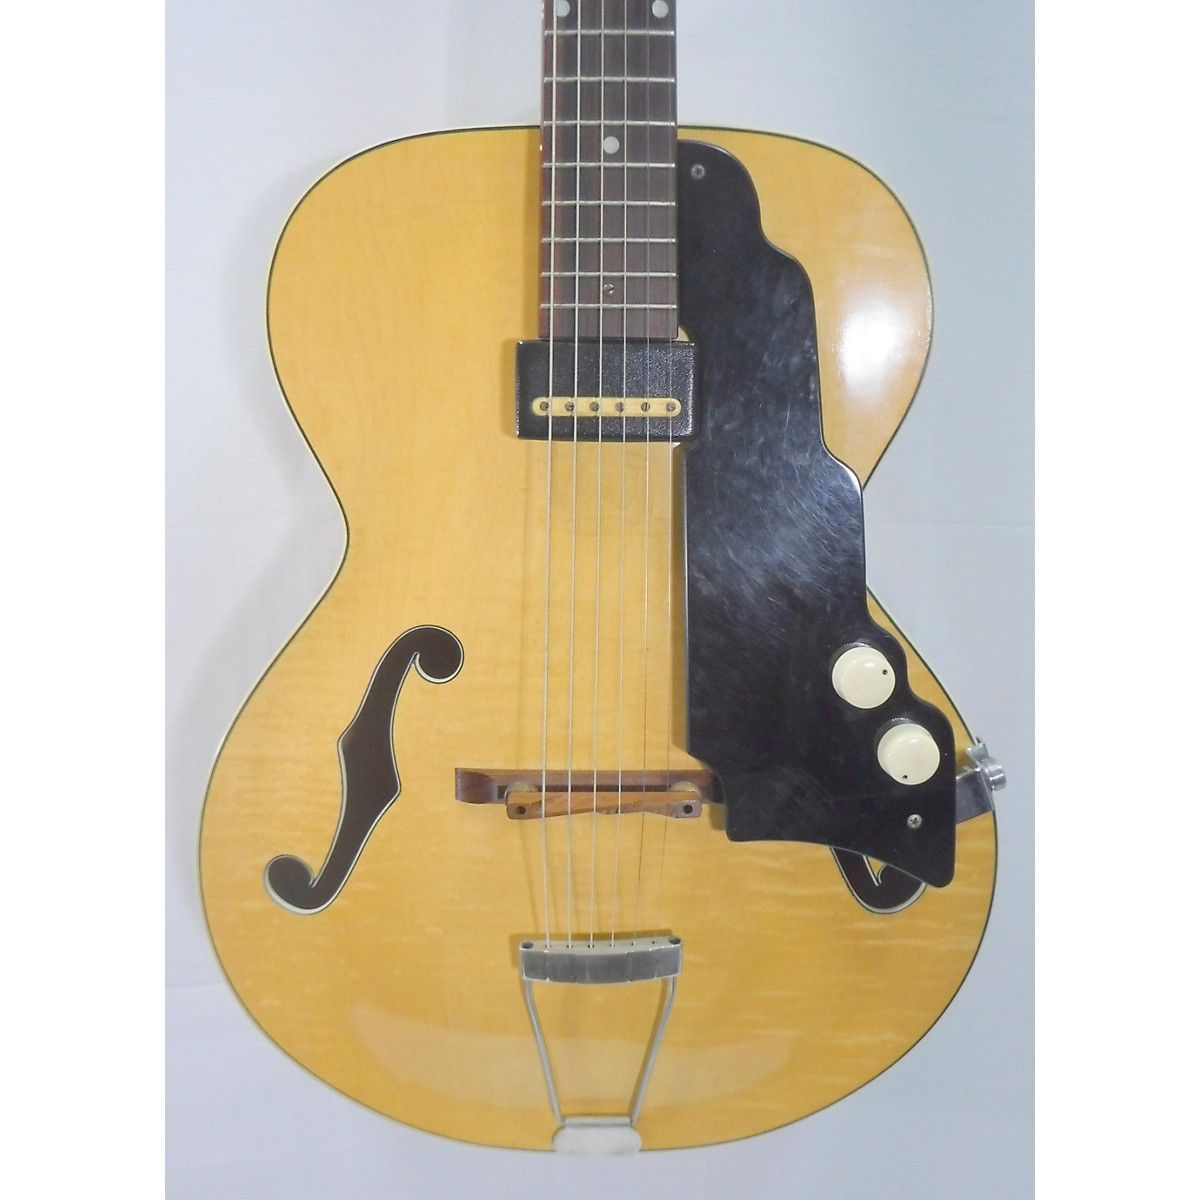 National 1953 New Yorker Spanish Hollow Body Electric Guitar